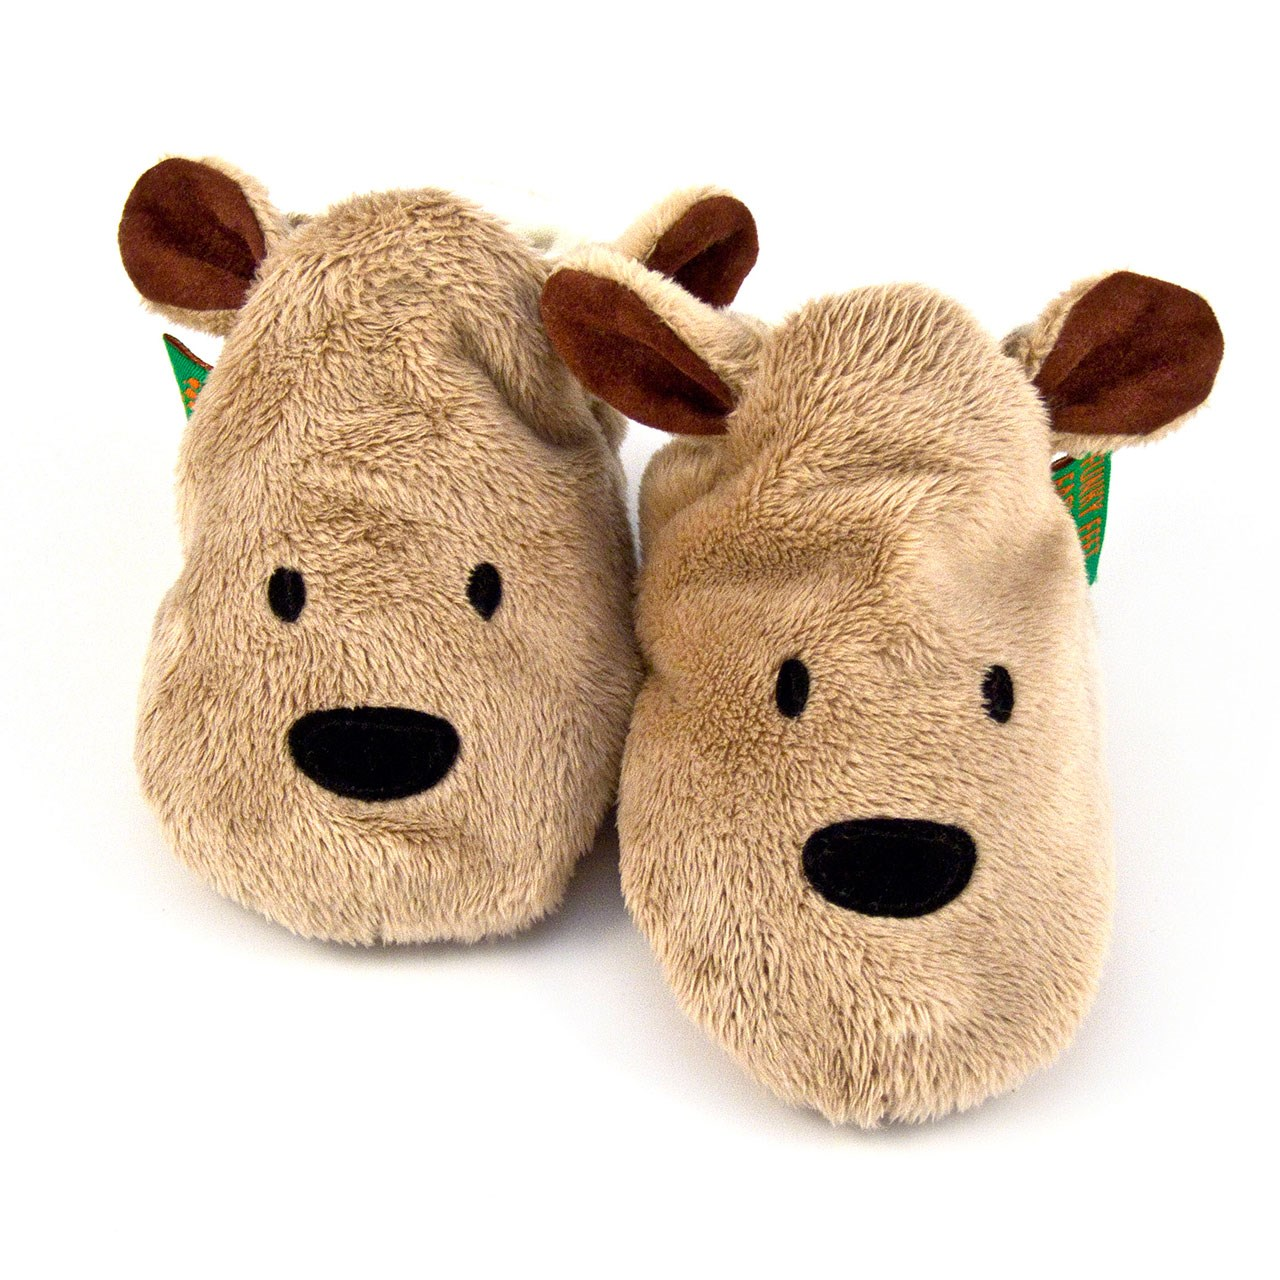 Soft Baby Shoes - Brown Bear